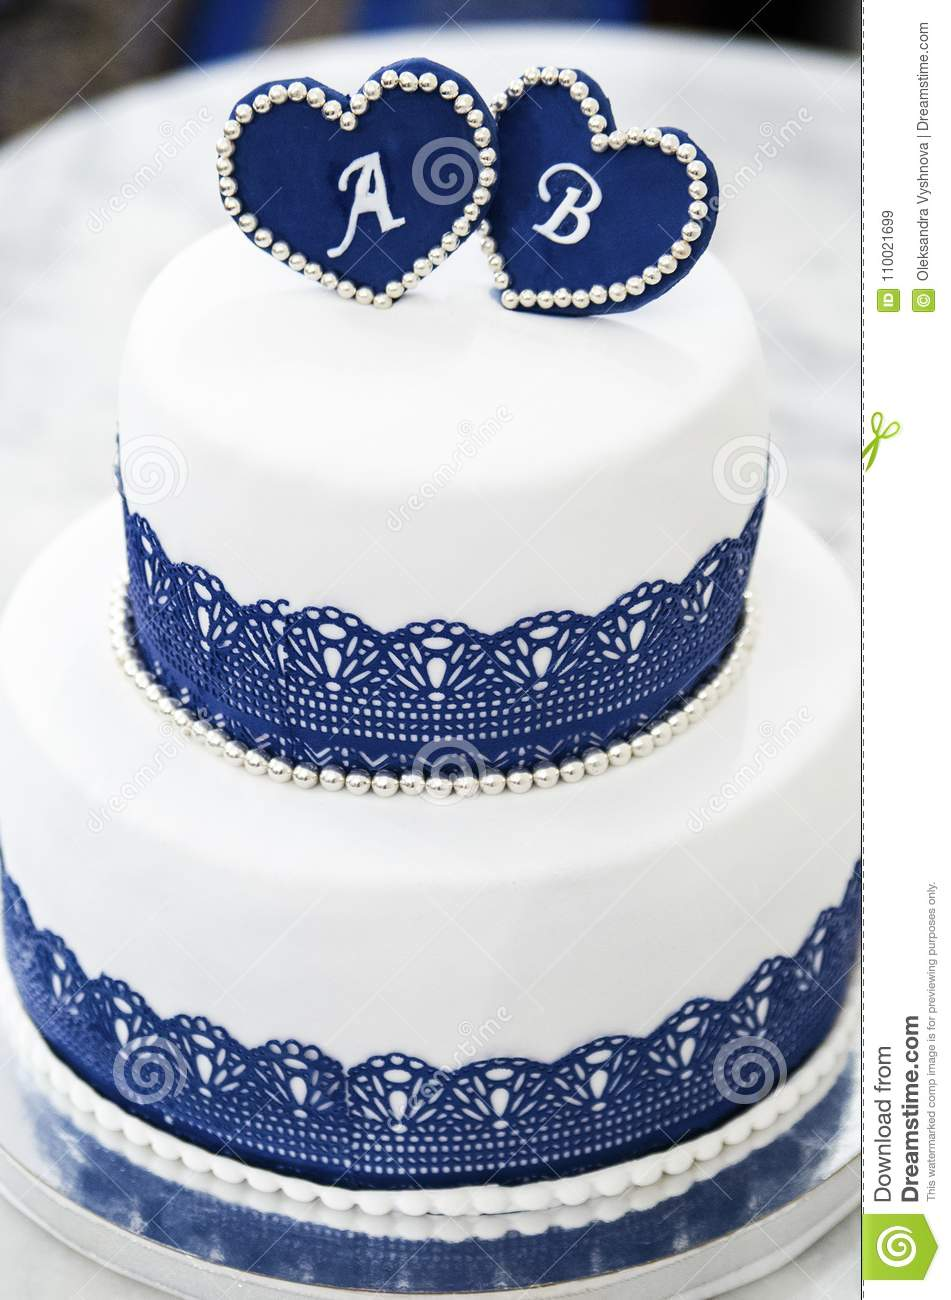 White Blue Wedding Cake With Hearts With Letters Stock Image - Image ...